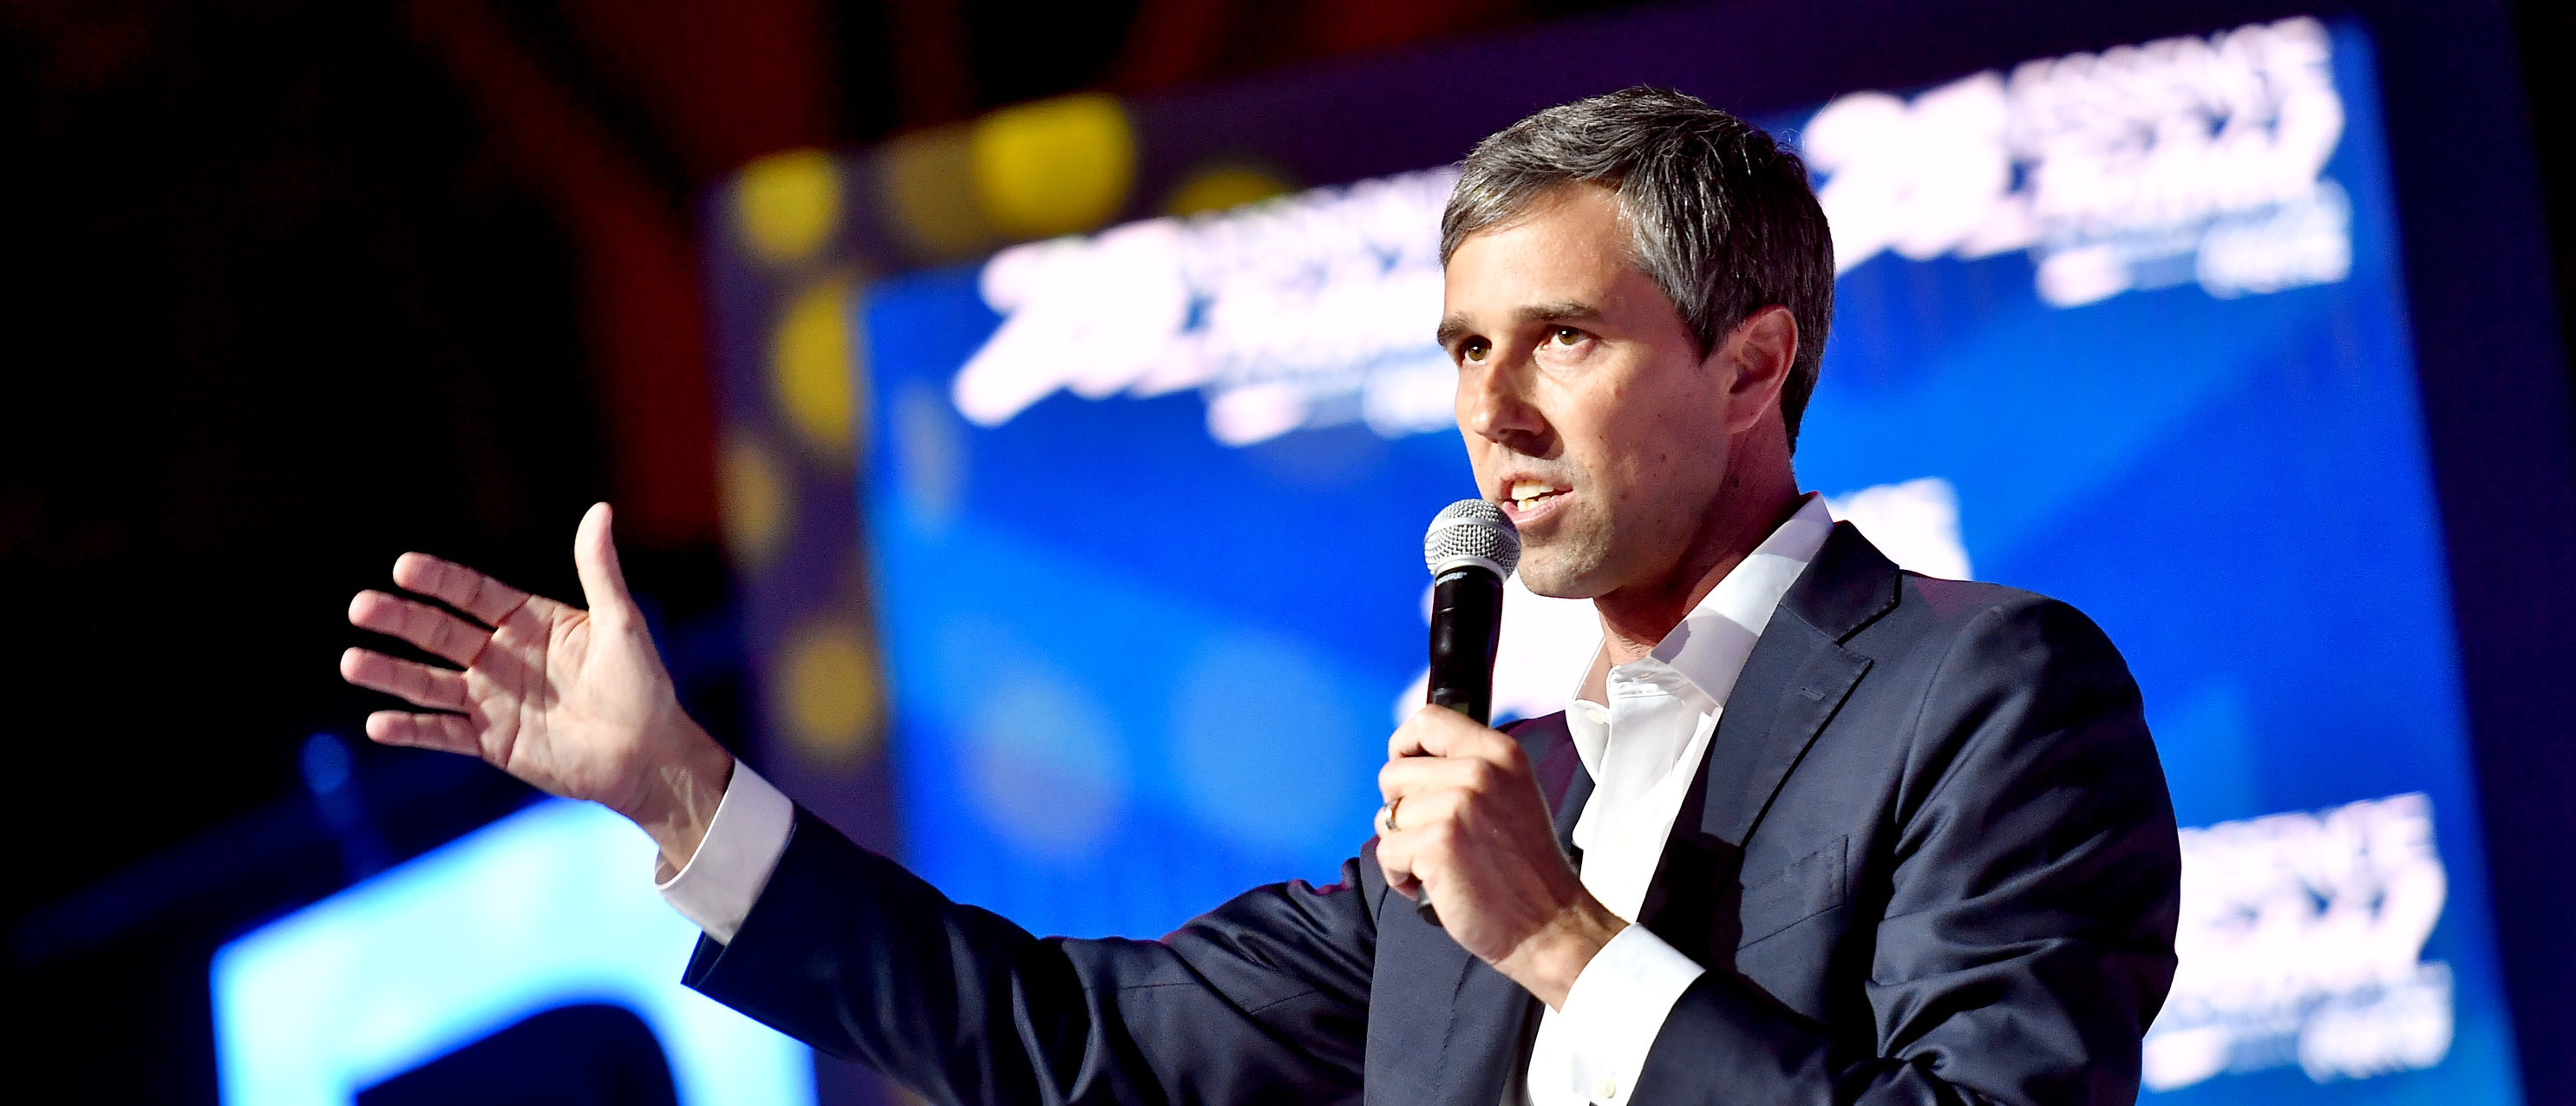 Here's Beto O'Rourke's Newest Plan To Force Big Tech To Snuff Out White Nationalism